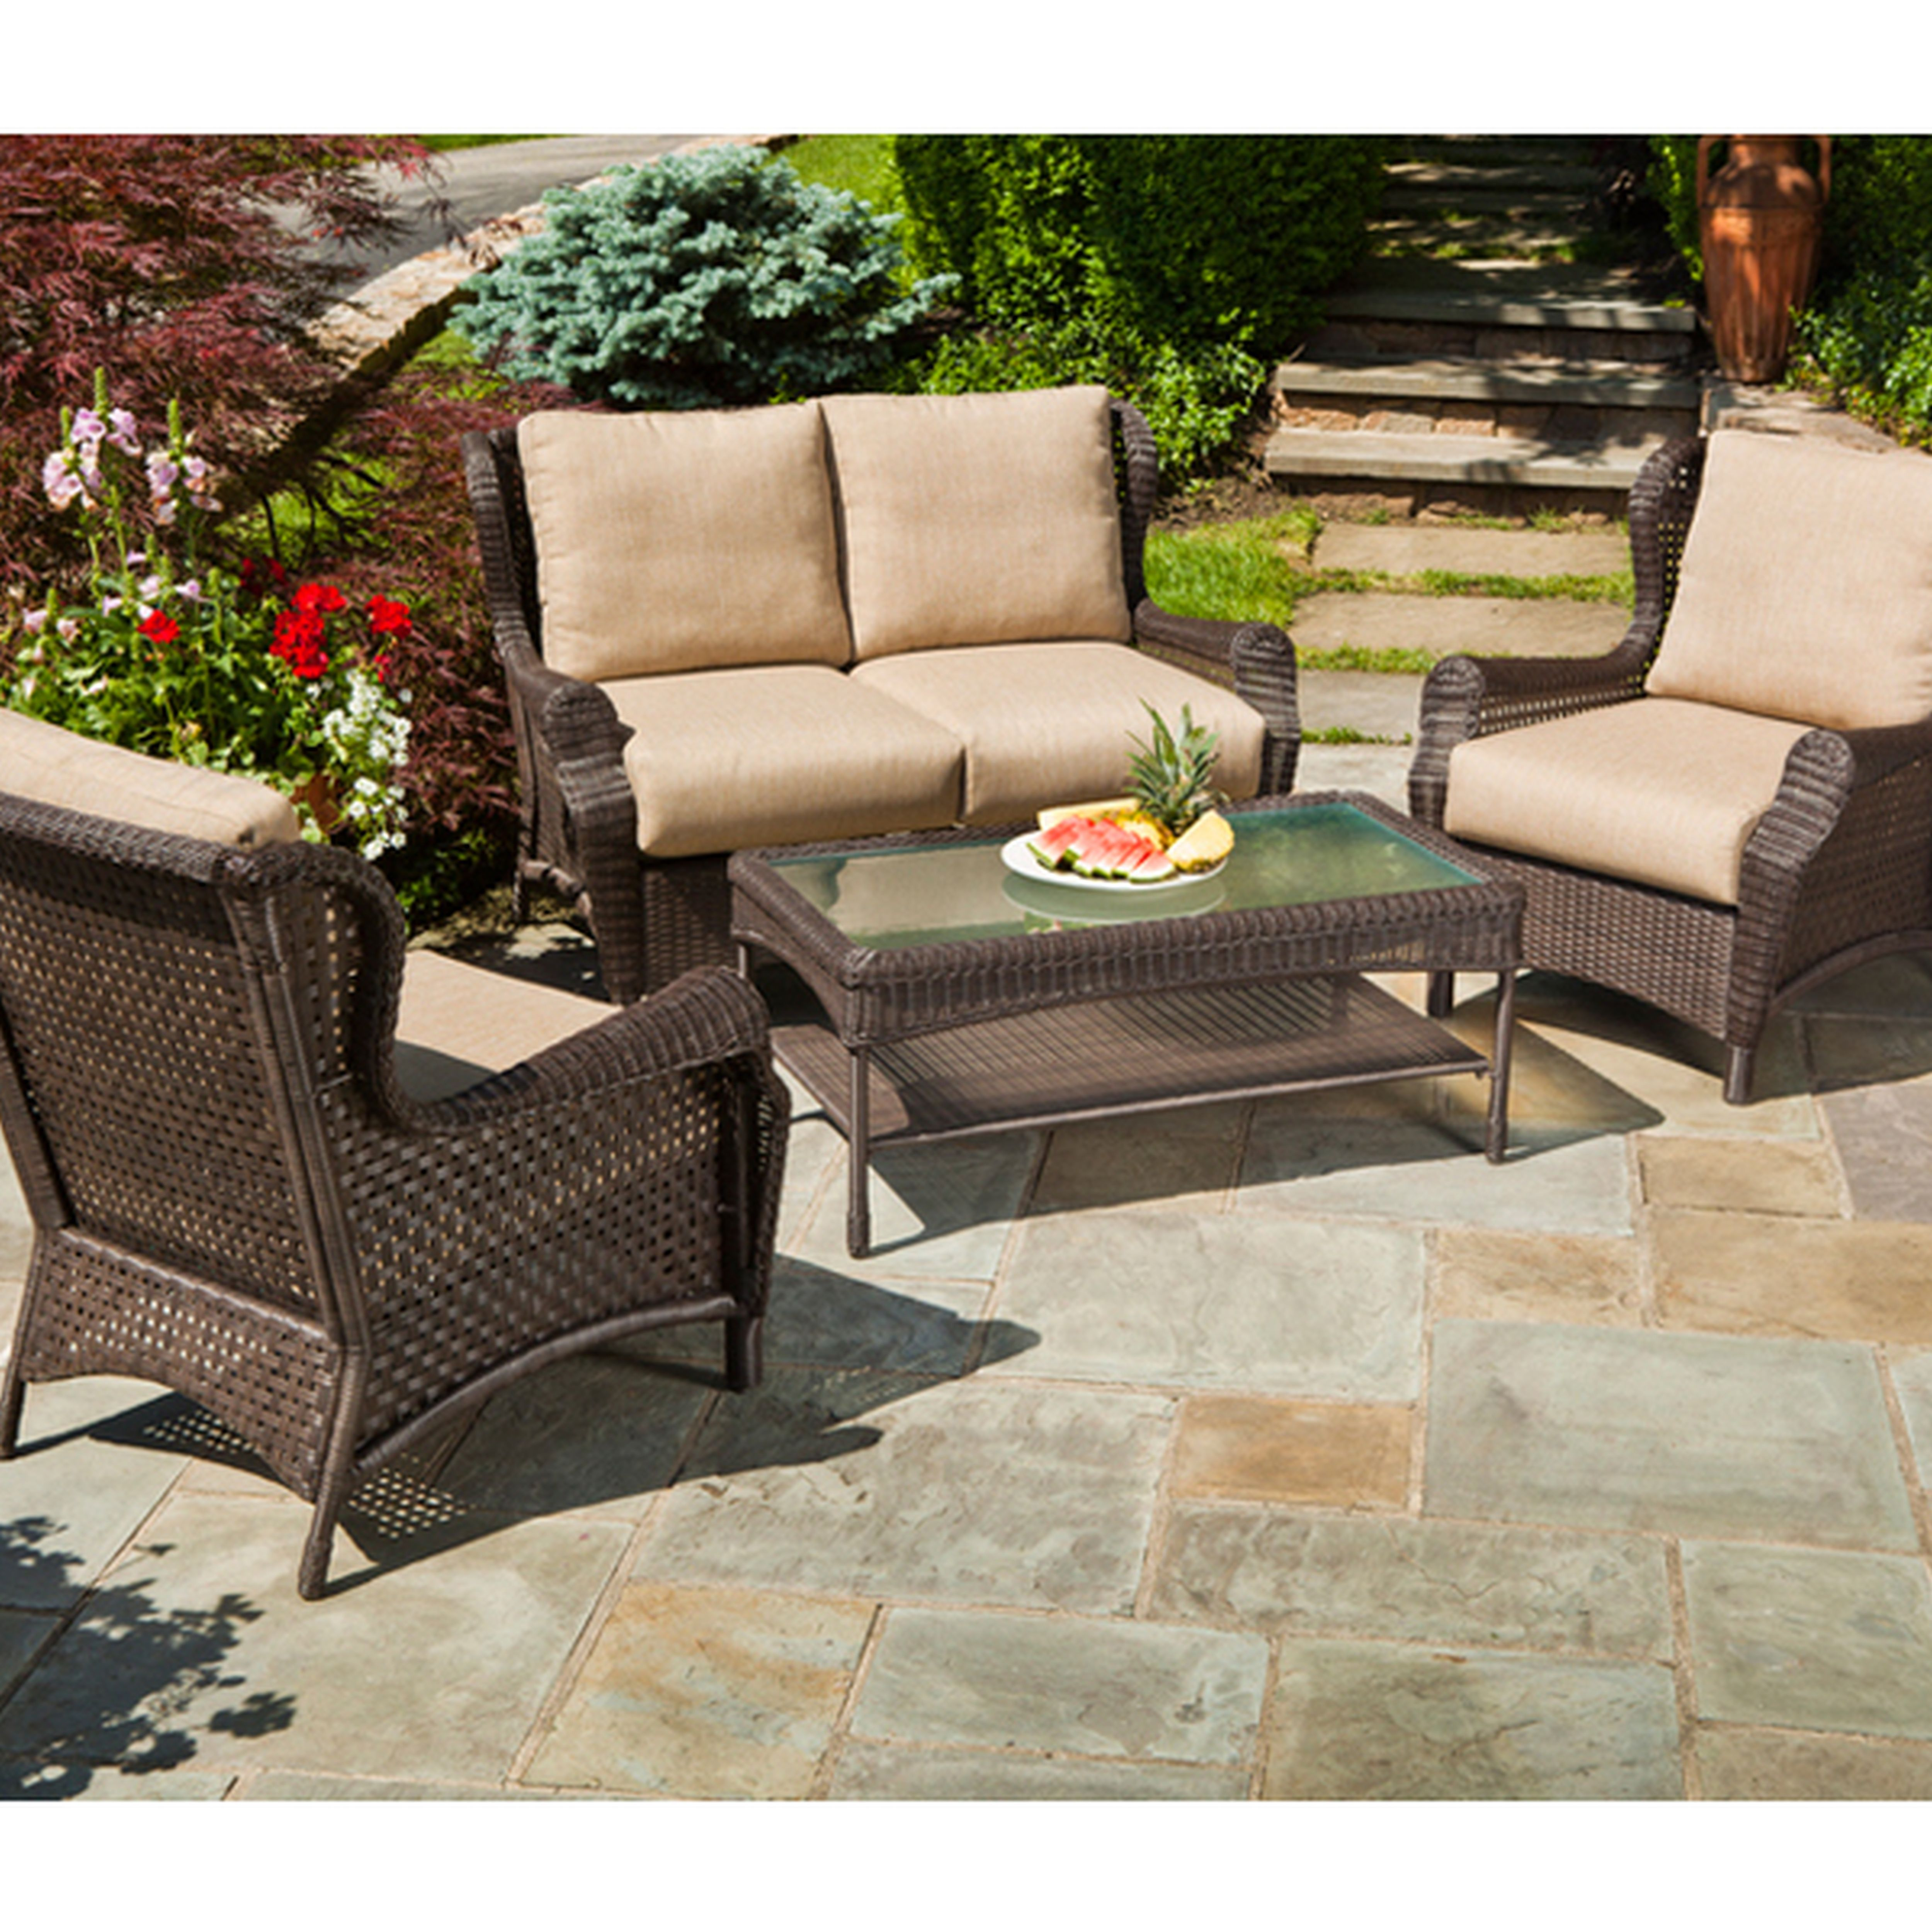 3182bb00641d57a740adea46beae5211 Top Result 50 Best Of Kroger Patio Furniture Gallery 2017 Pkt6